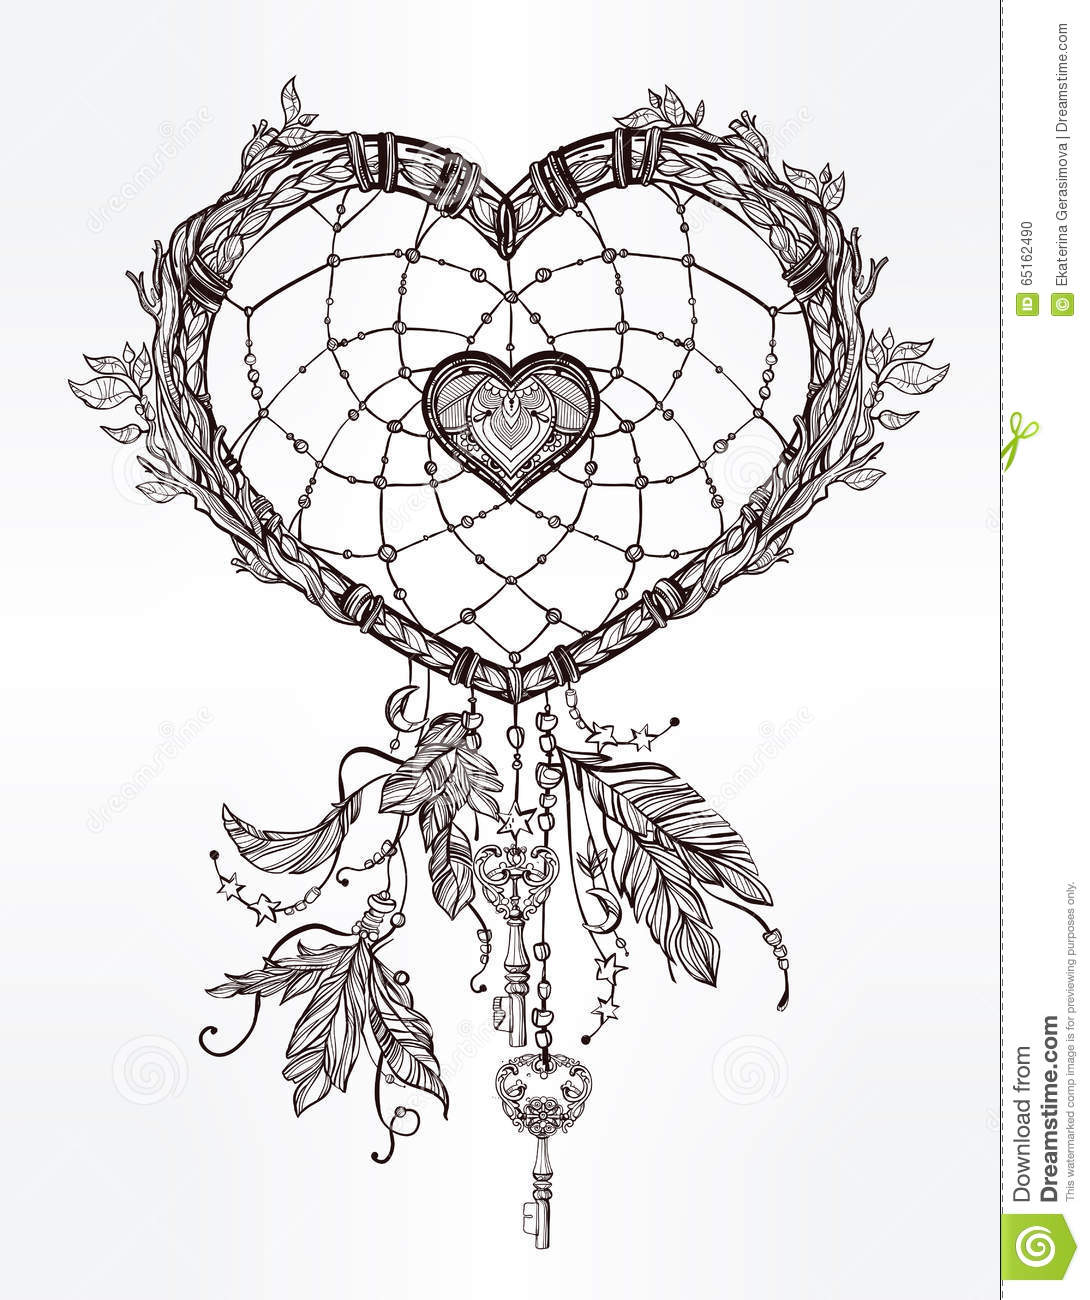 Heart Shaped Dream Catcher With Feathers Stock Vector Image 65162490